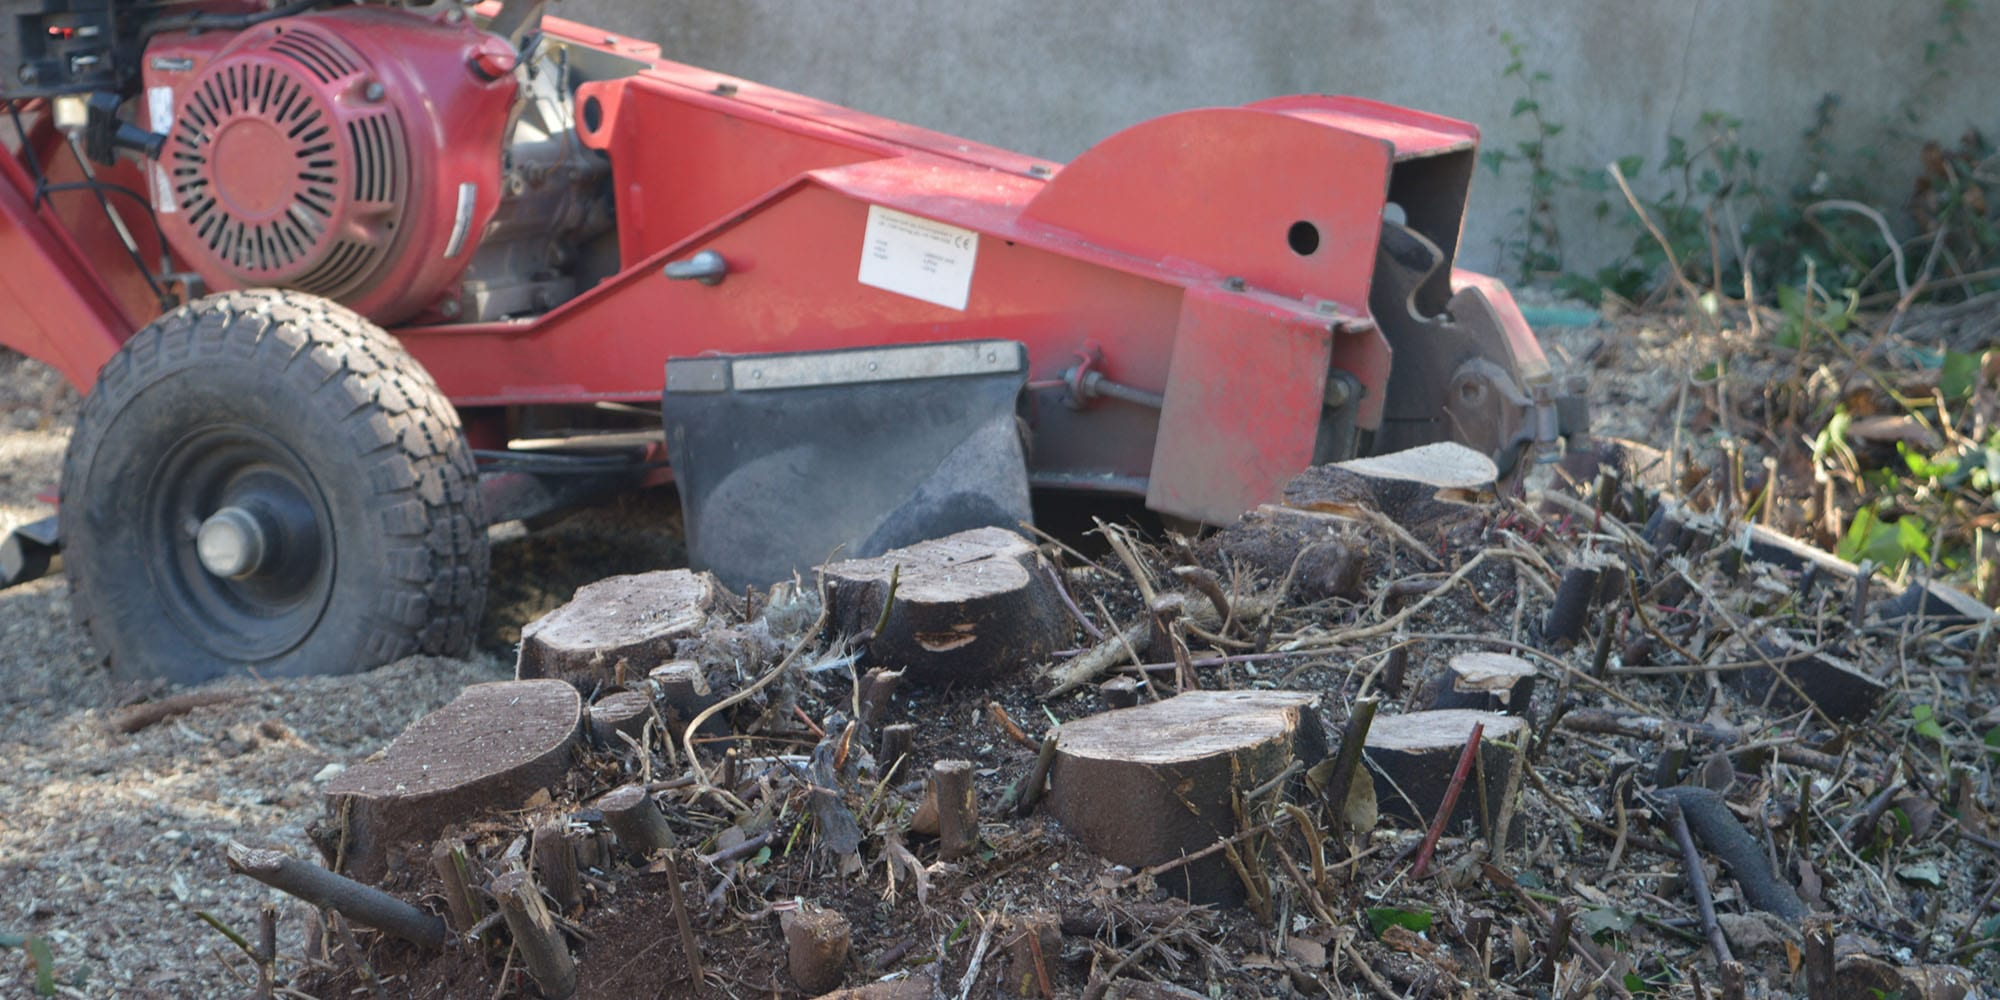 How to Remove a Tree Stump Without a Grinder